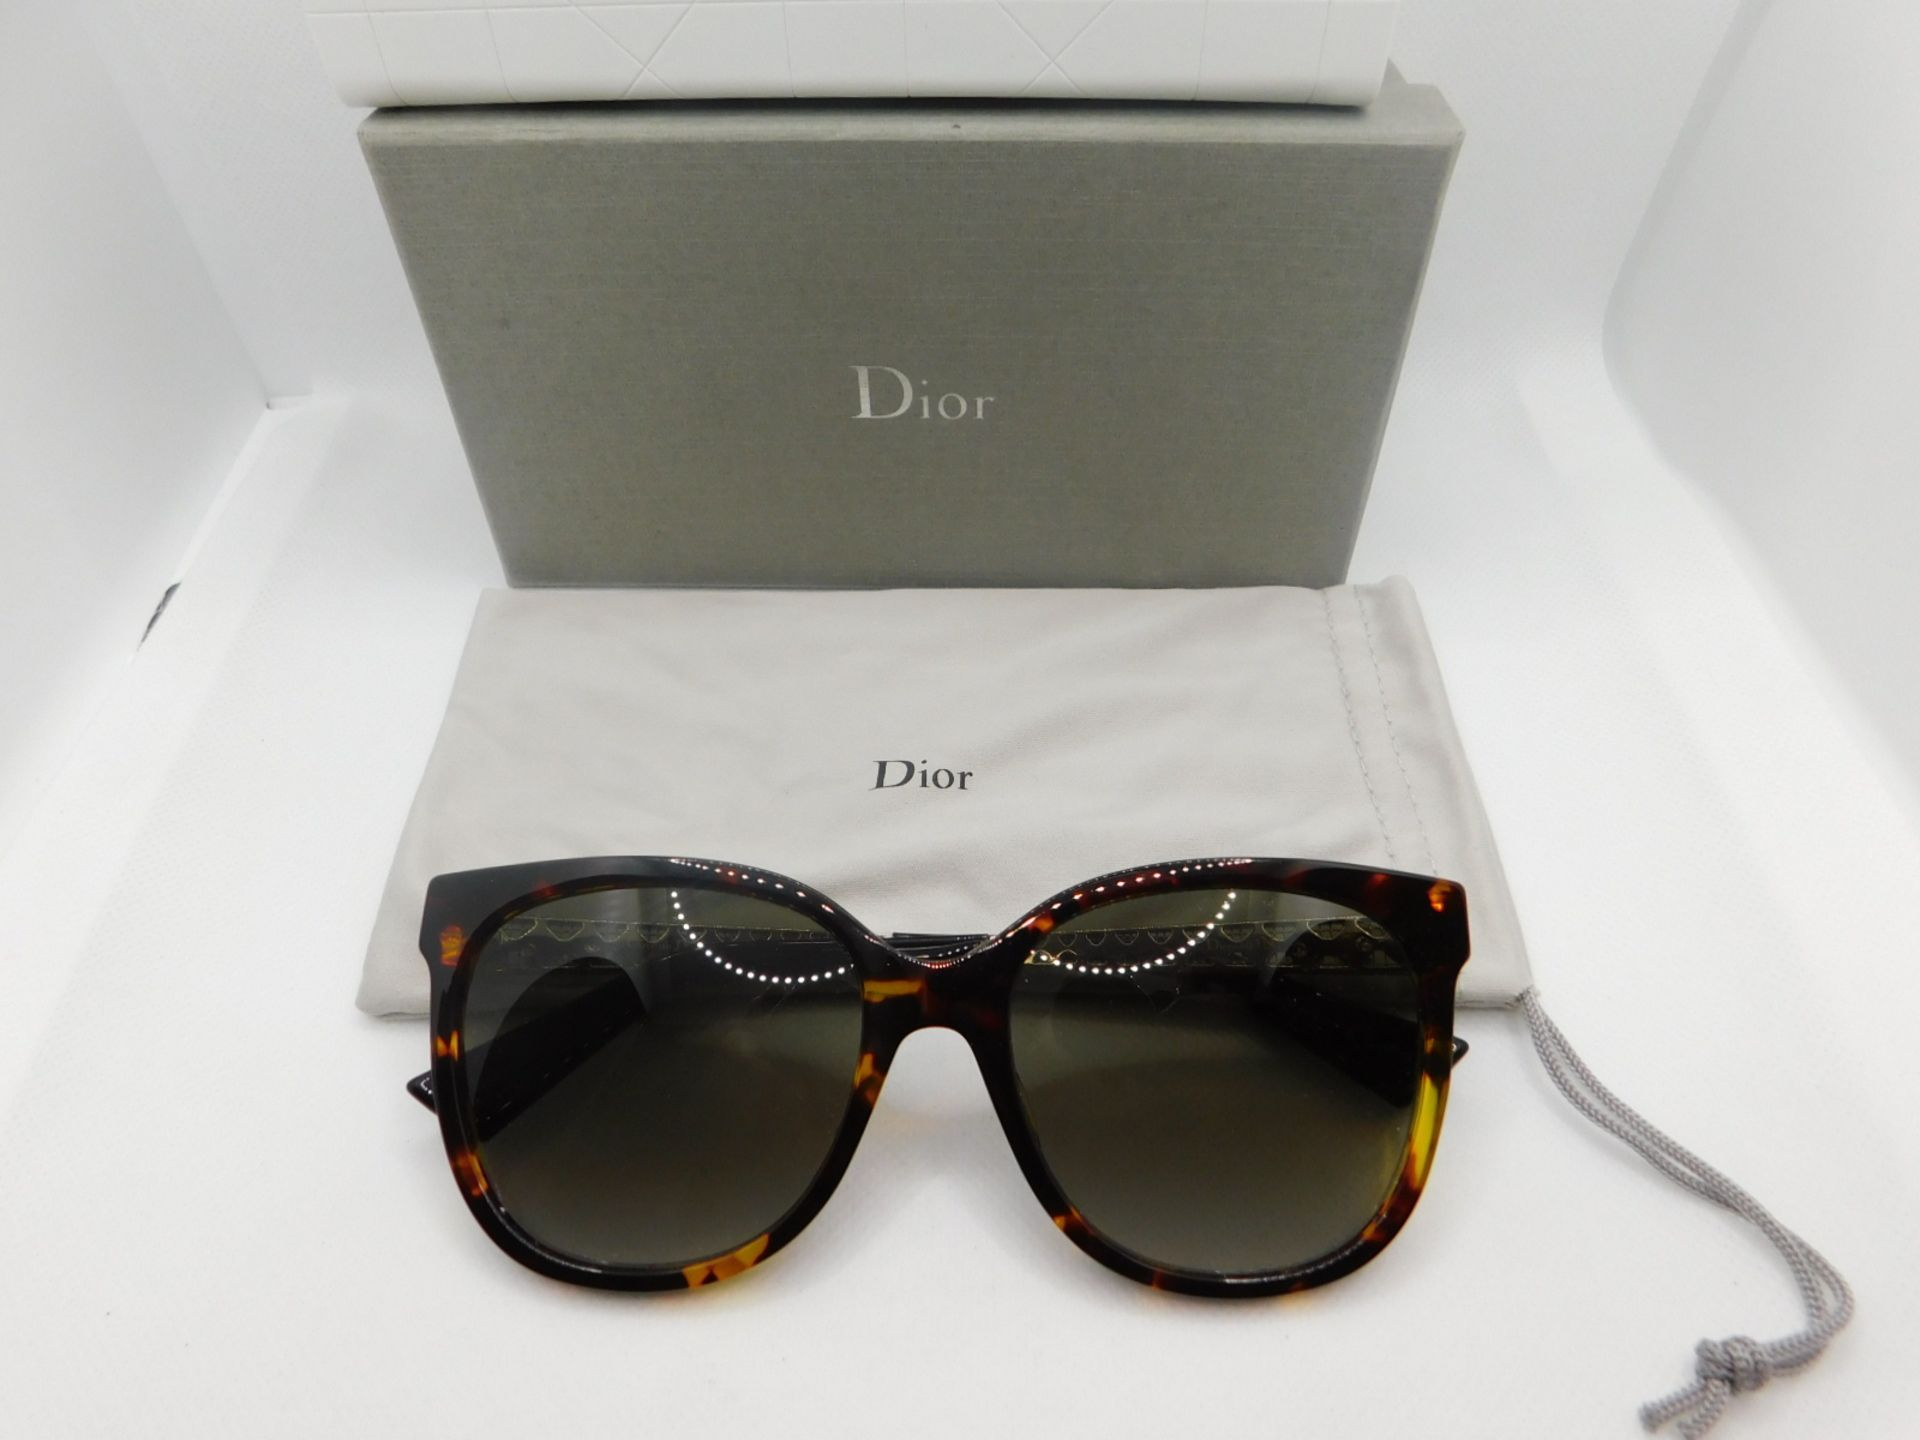 1 BOXED PAIR OF DIOR LADIES SUNGLASSES FRAME WITH CASE AND POUCH MODEL DIORAMARRP £199